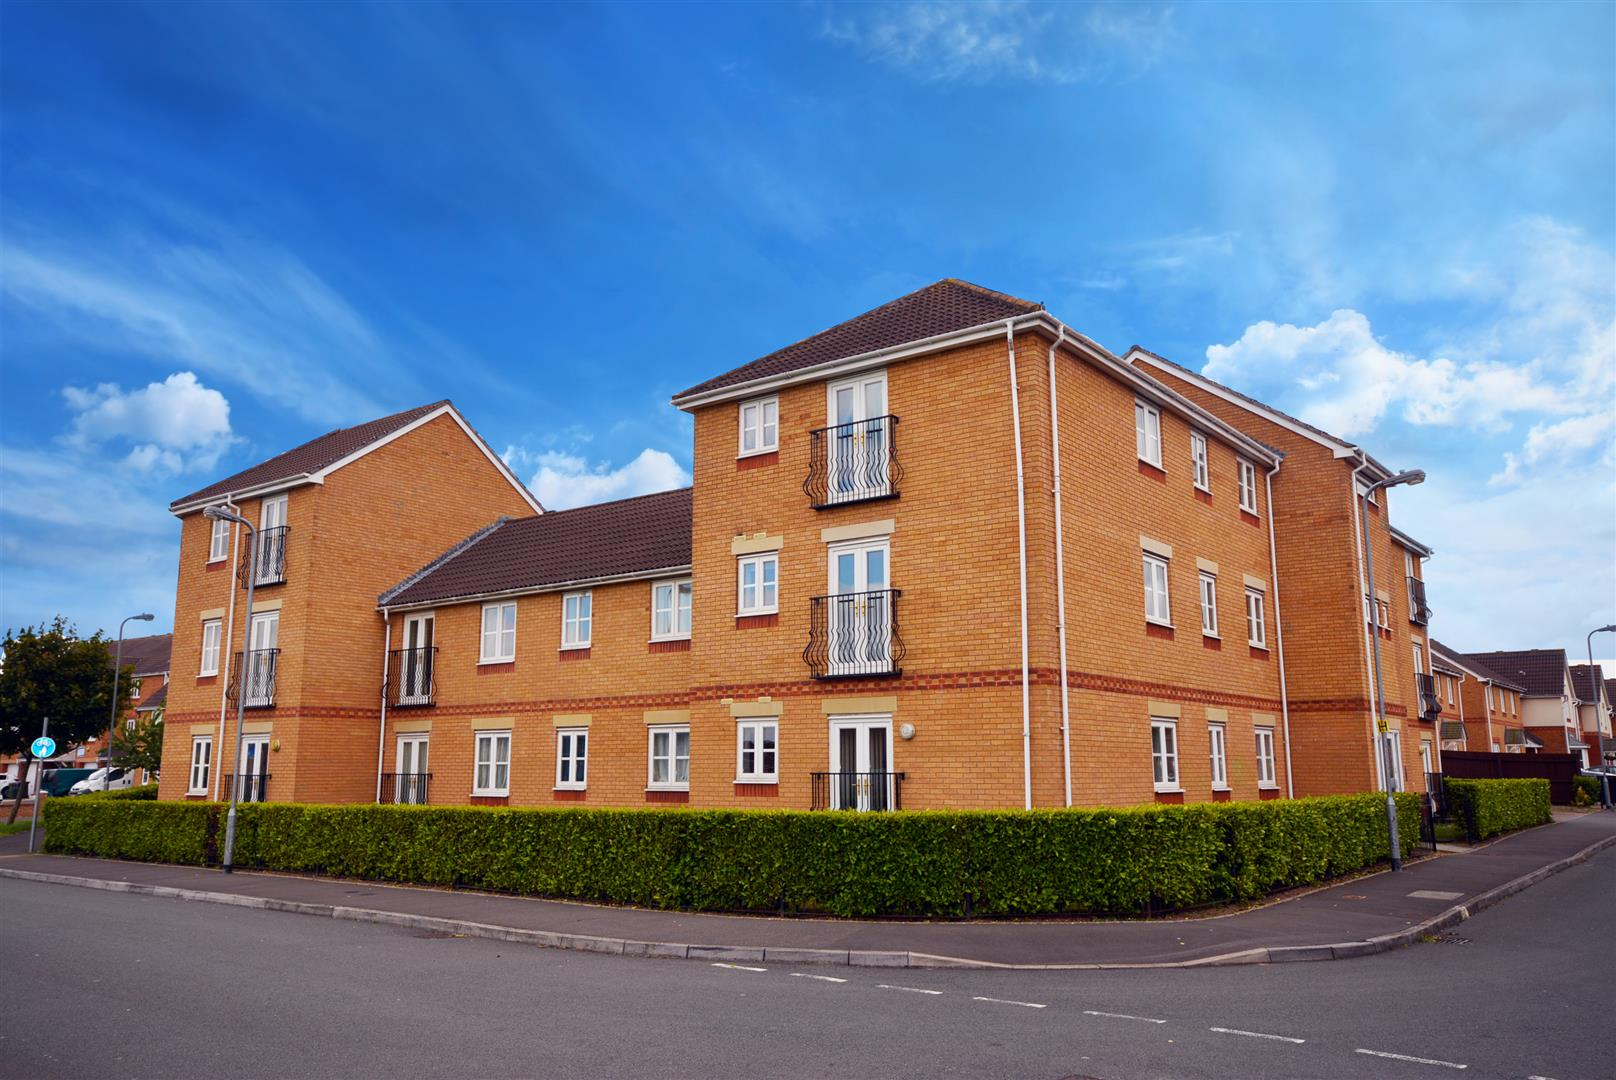 2 bed flat to rent in Spencer David Way, Cardiff, CF3